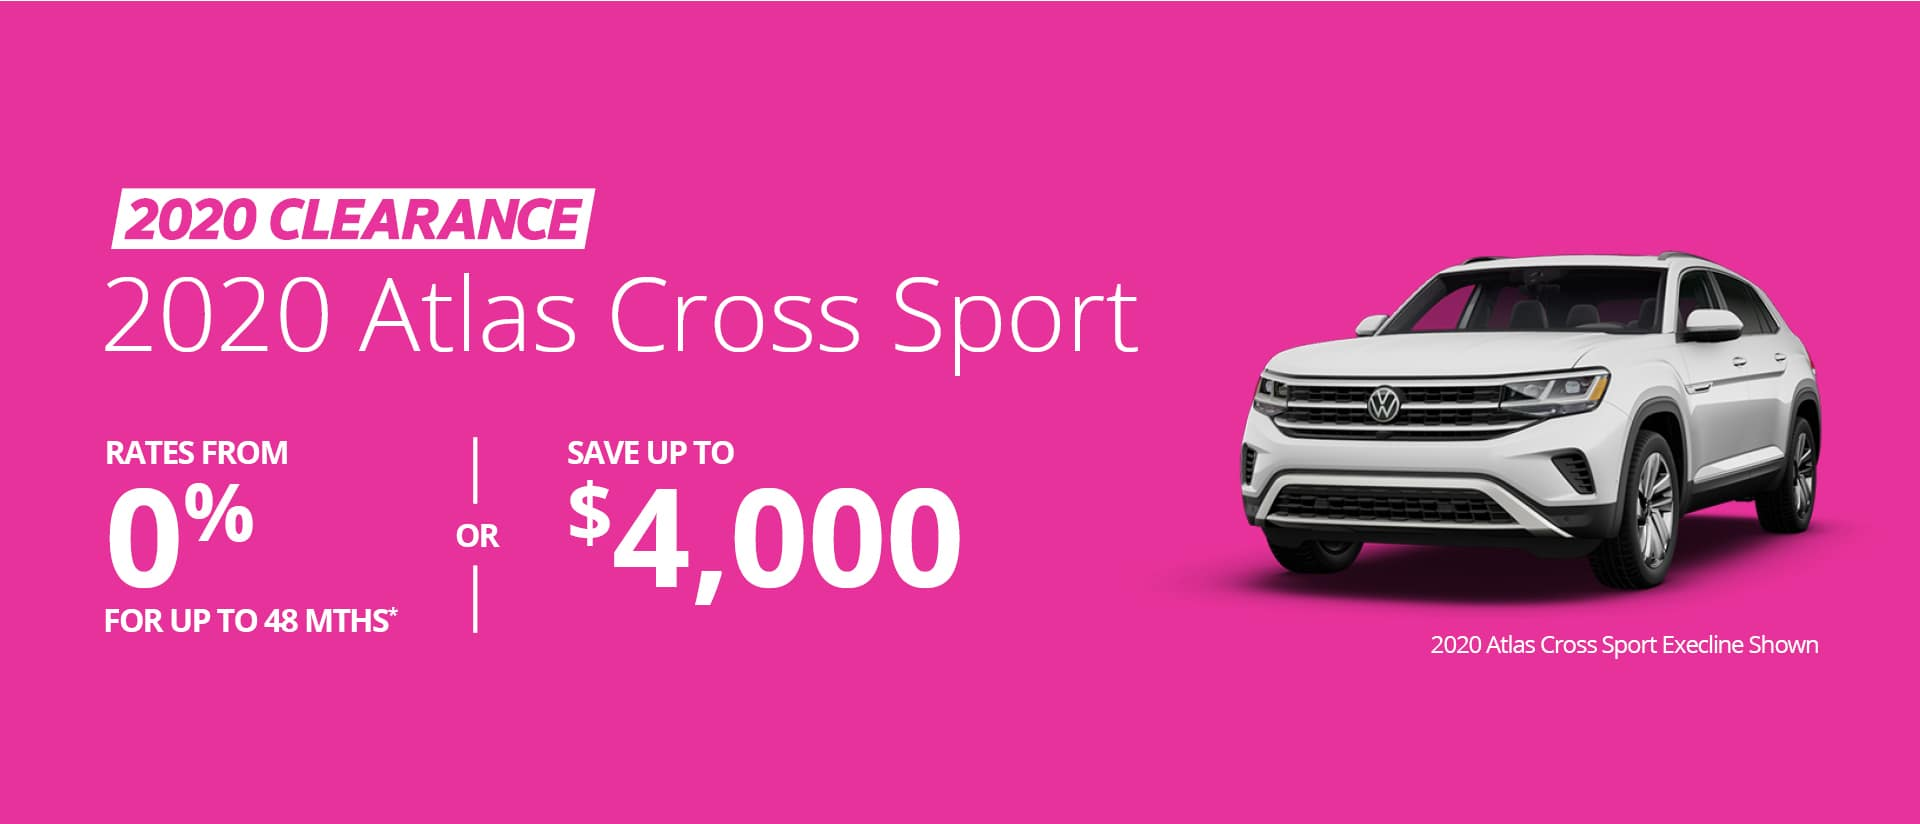 2020 Atlas Cross Sport Clearance desktop banner